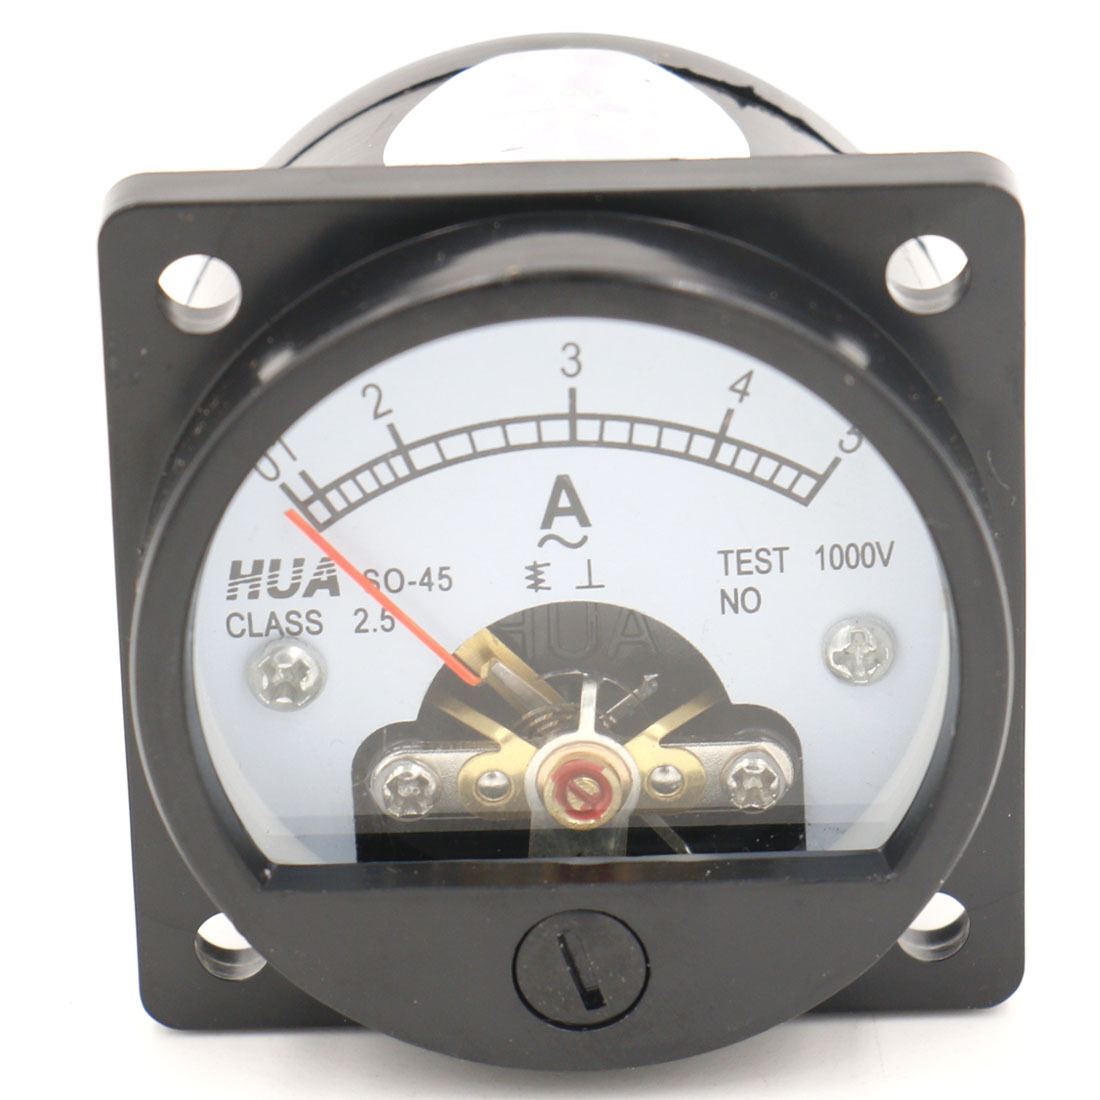 Analog Panel Meter : Ammeter so class accuracy ac a round analog